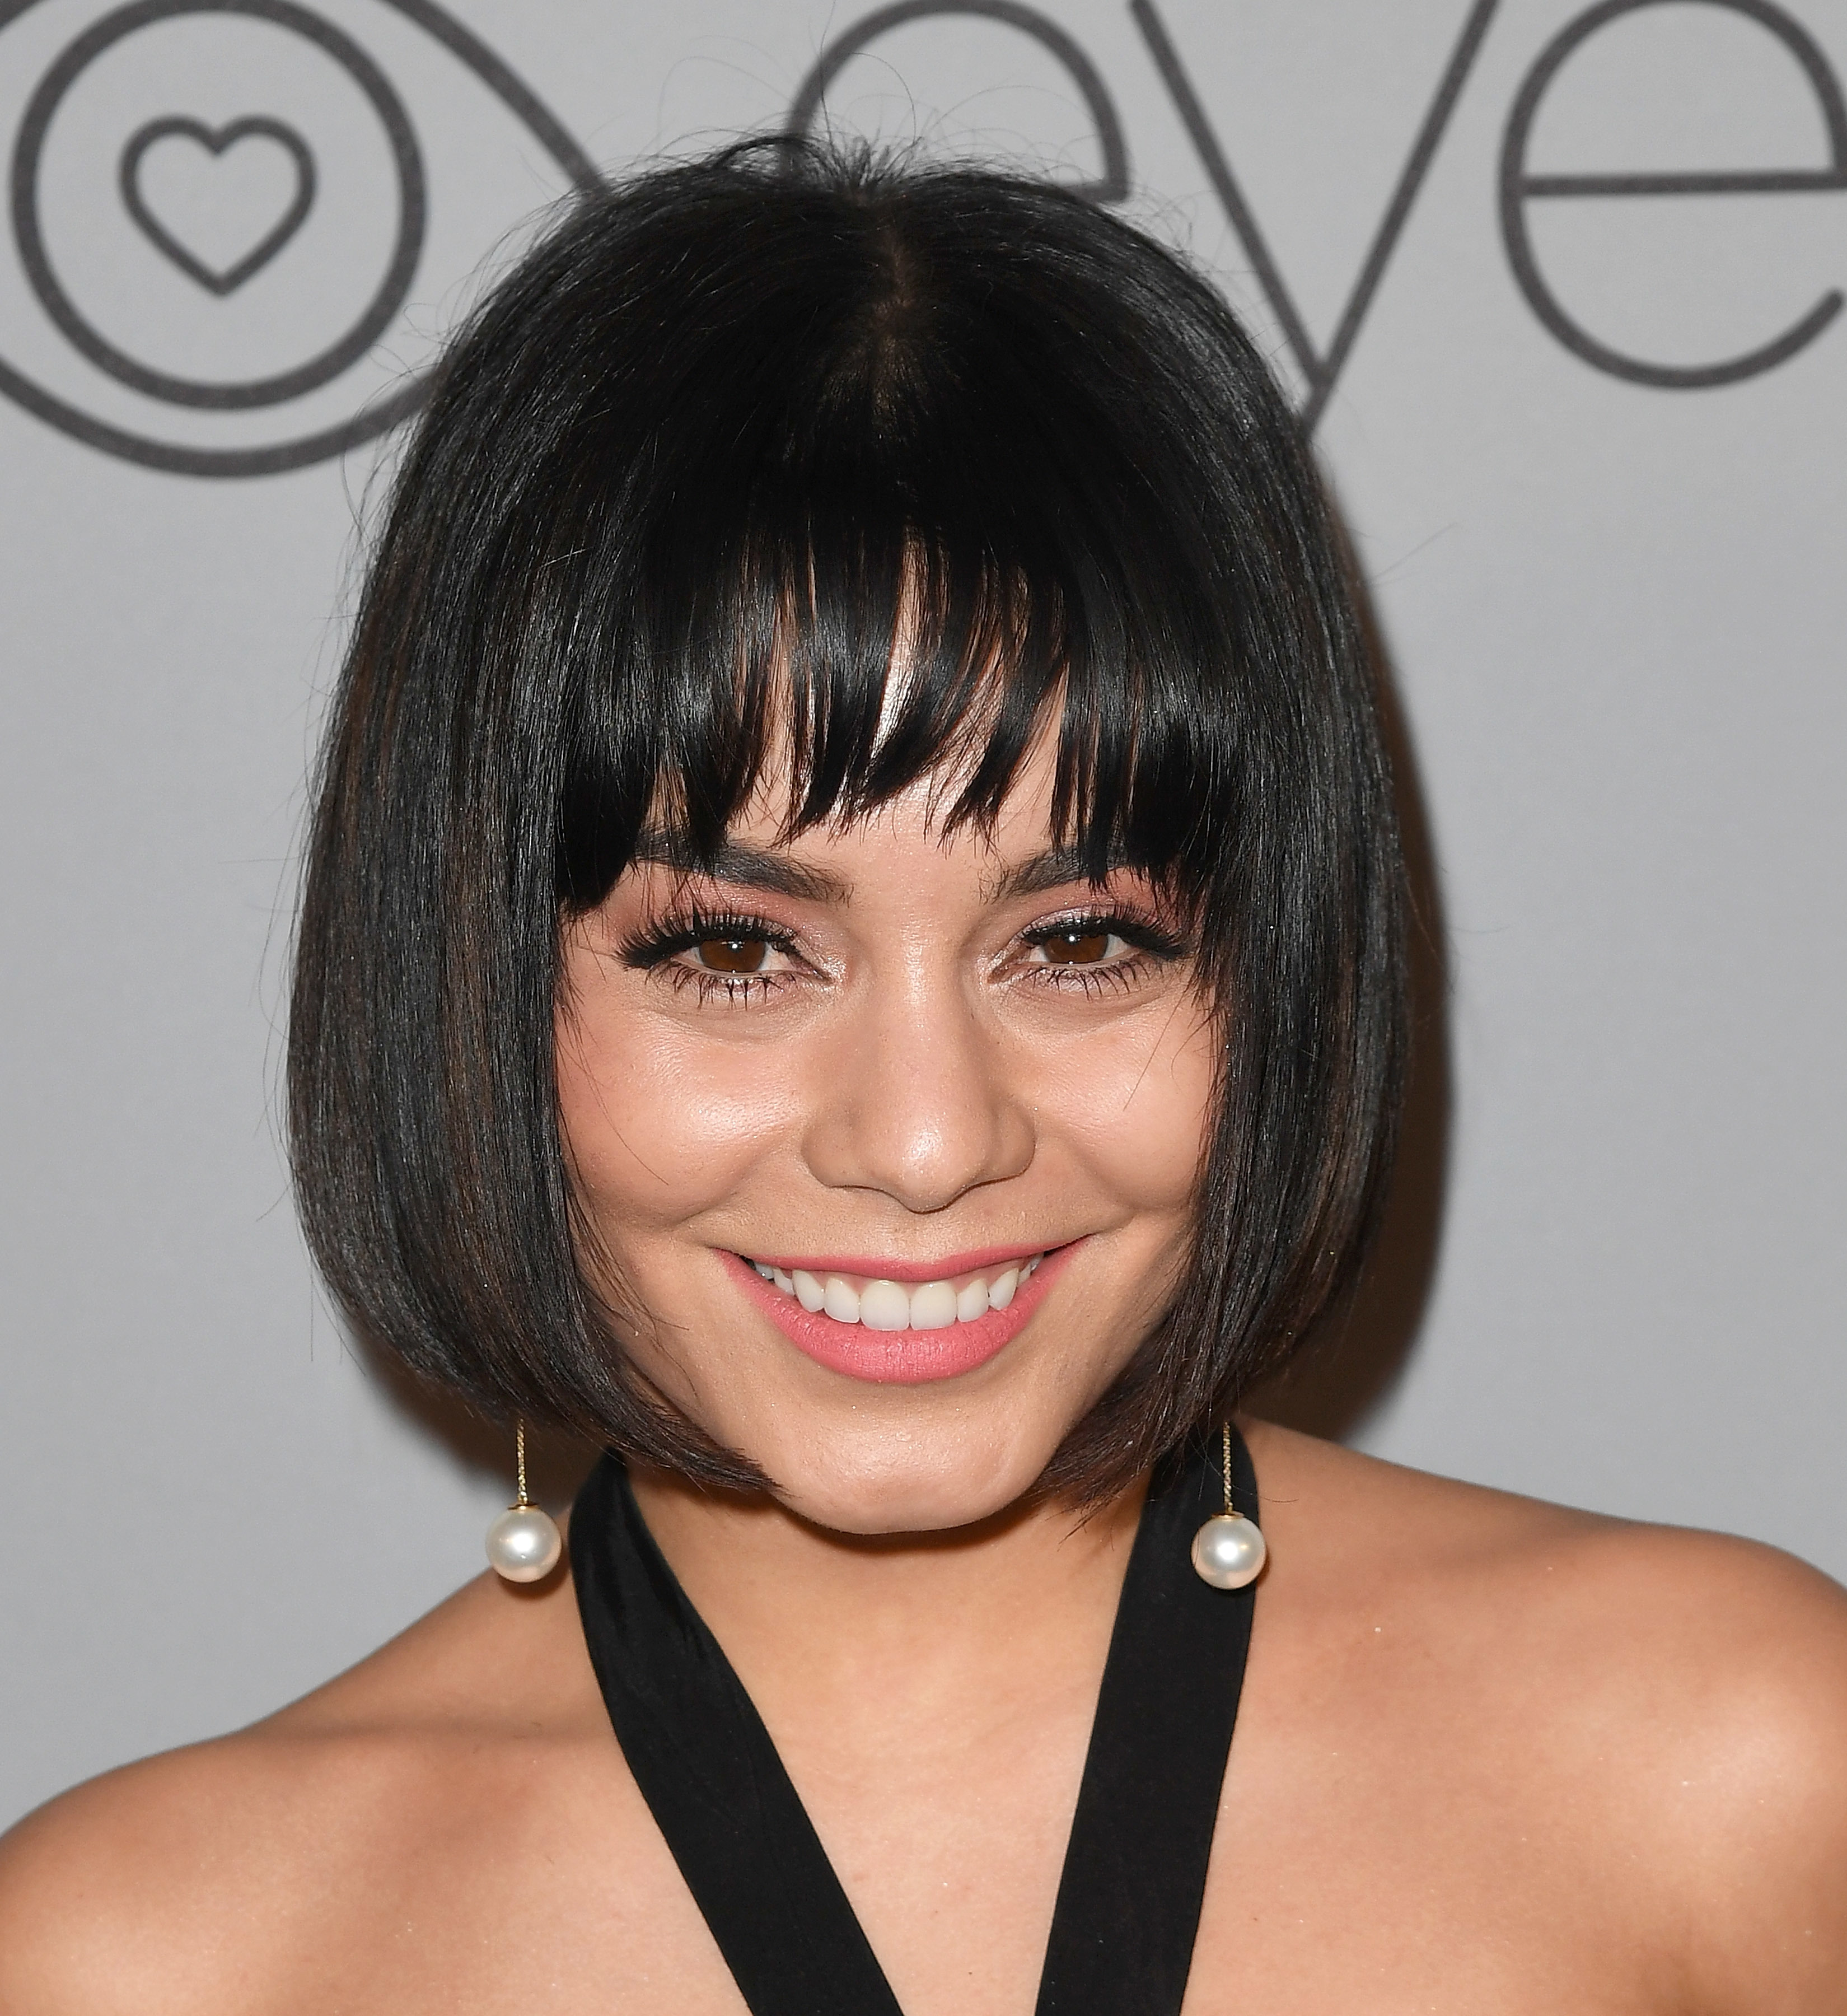 Vanessa Hudgens arrives at the InStyle and Warner Bros Golden Globes After Party in Los Angeles on Jan. 7, 2018.